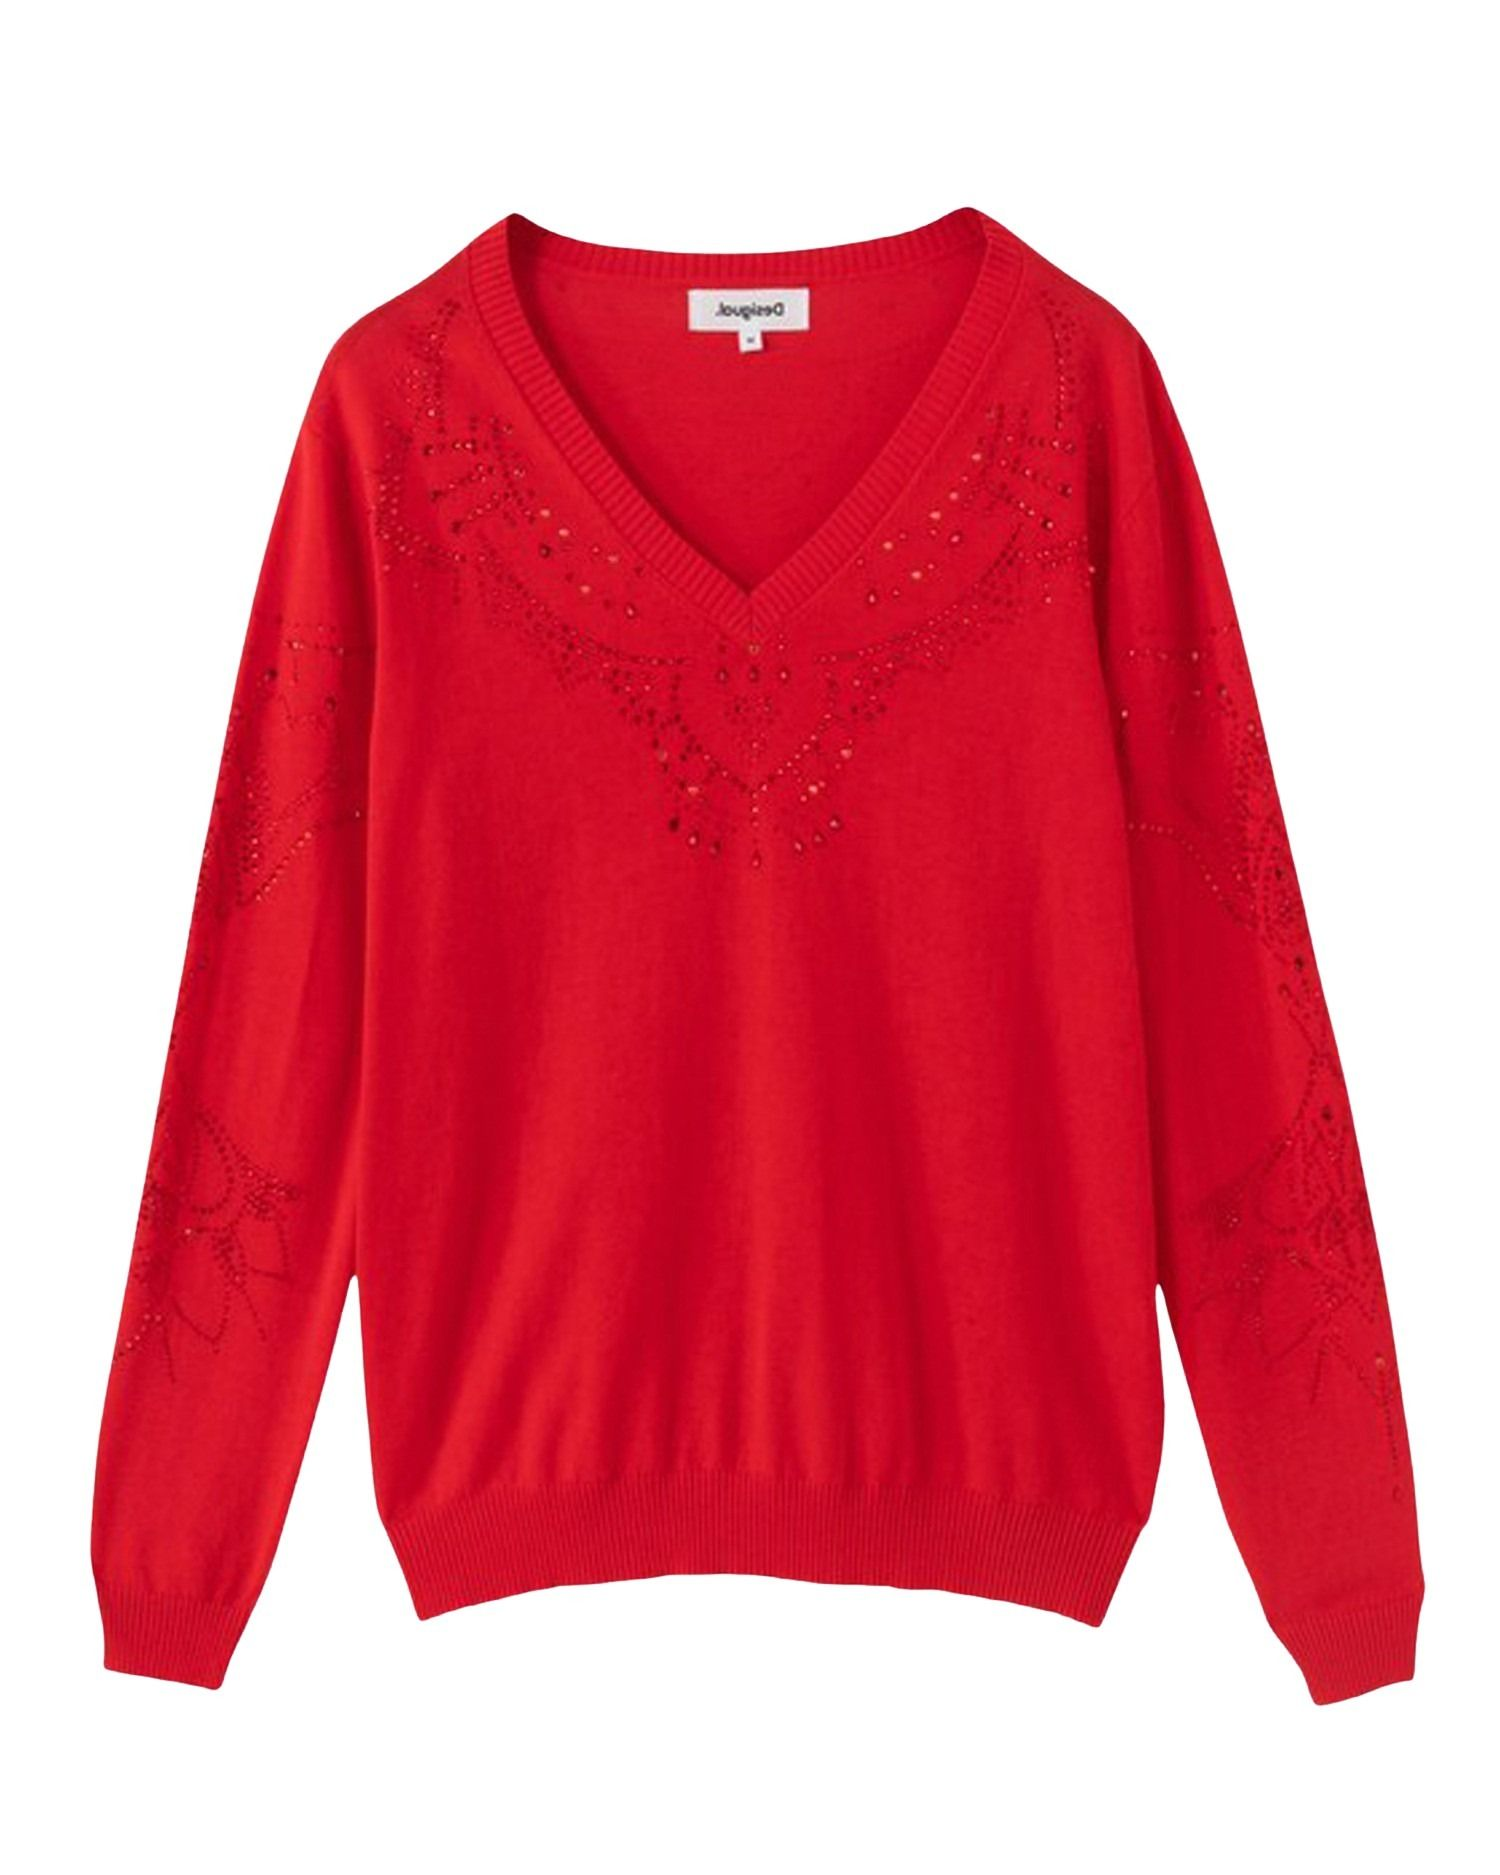 Desigual Cottons DESIGUAL WOMEN'S 21SWJF04RED RED COTTON SWEATER